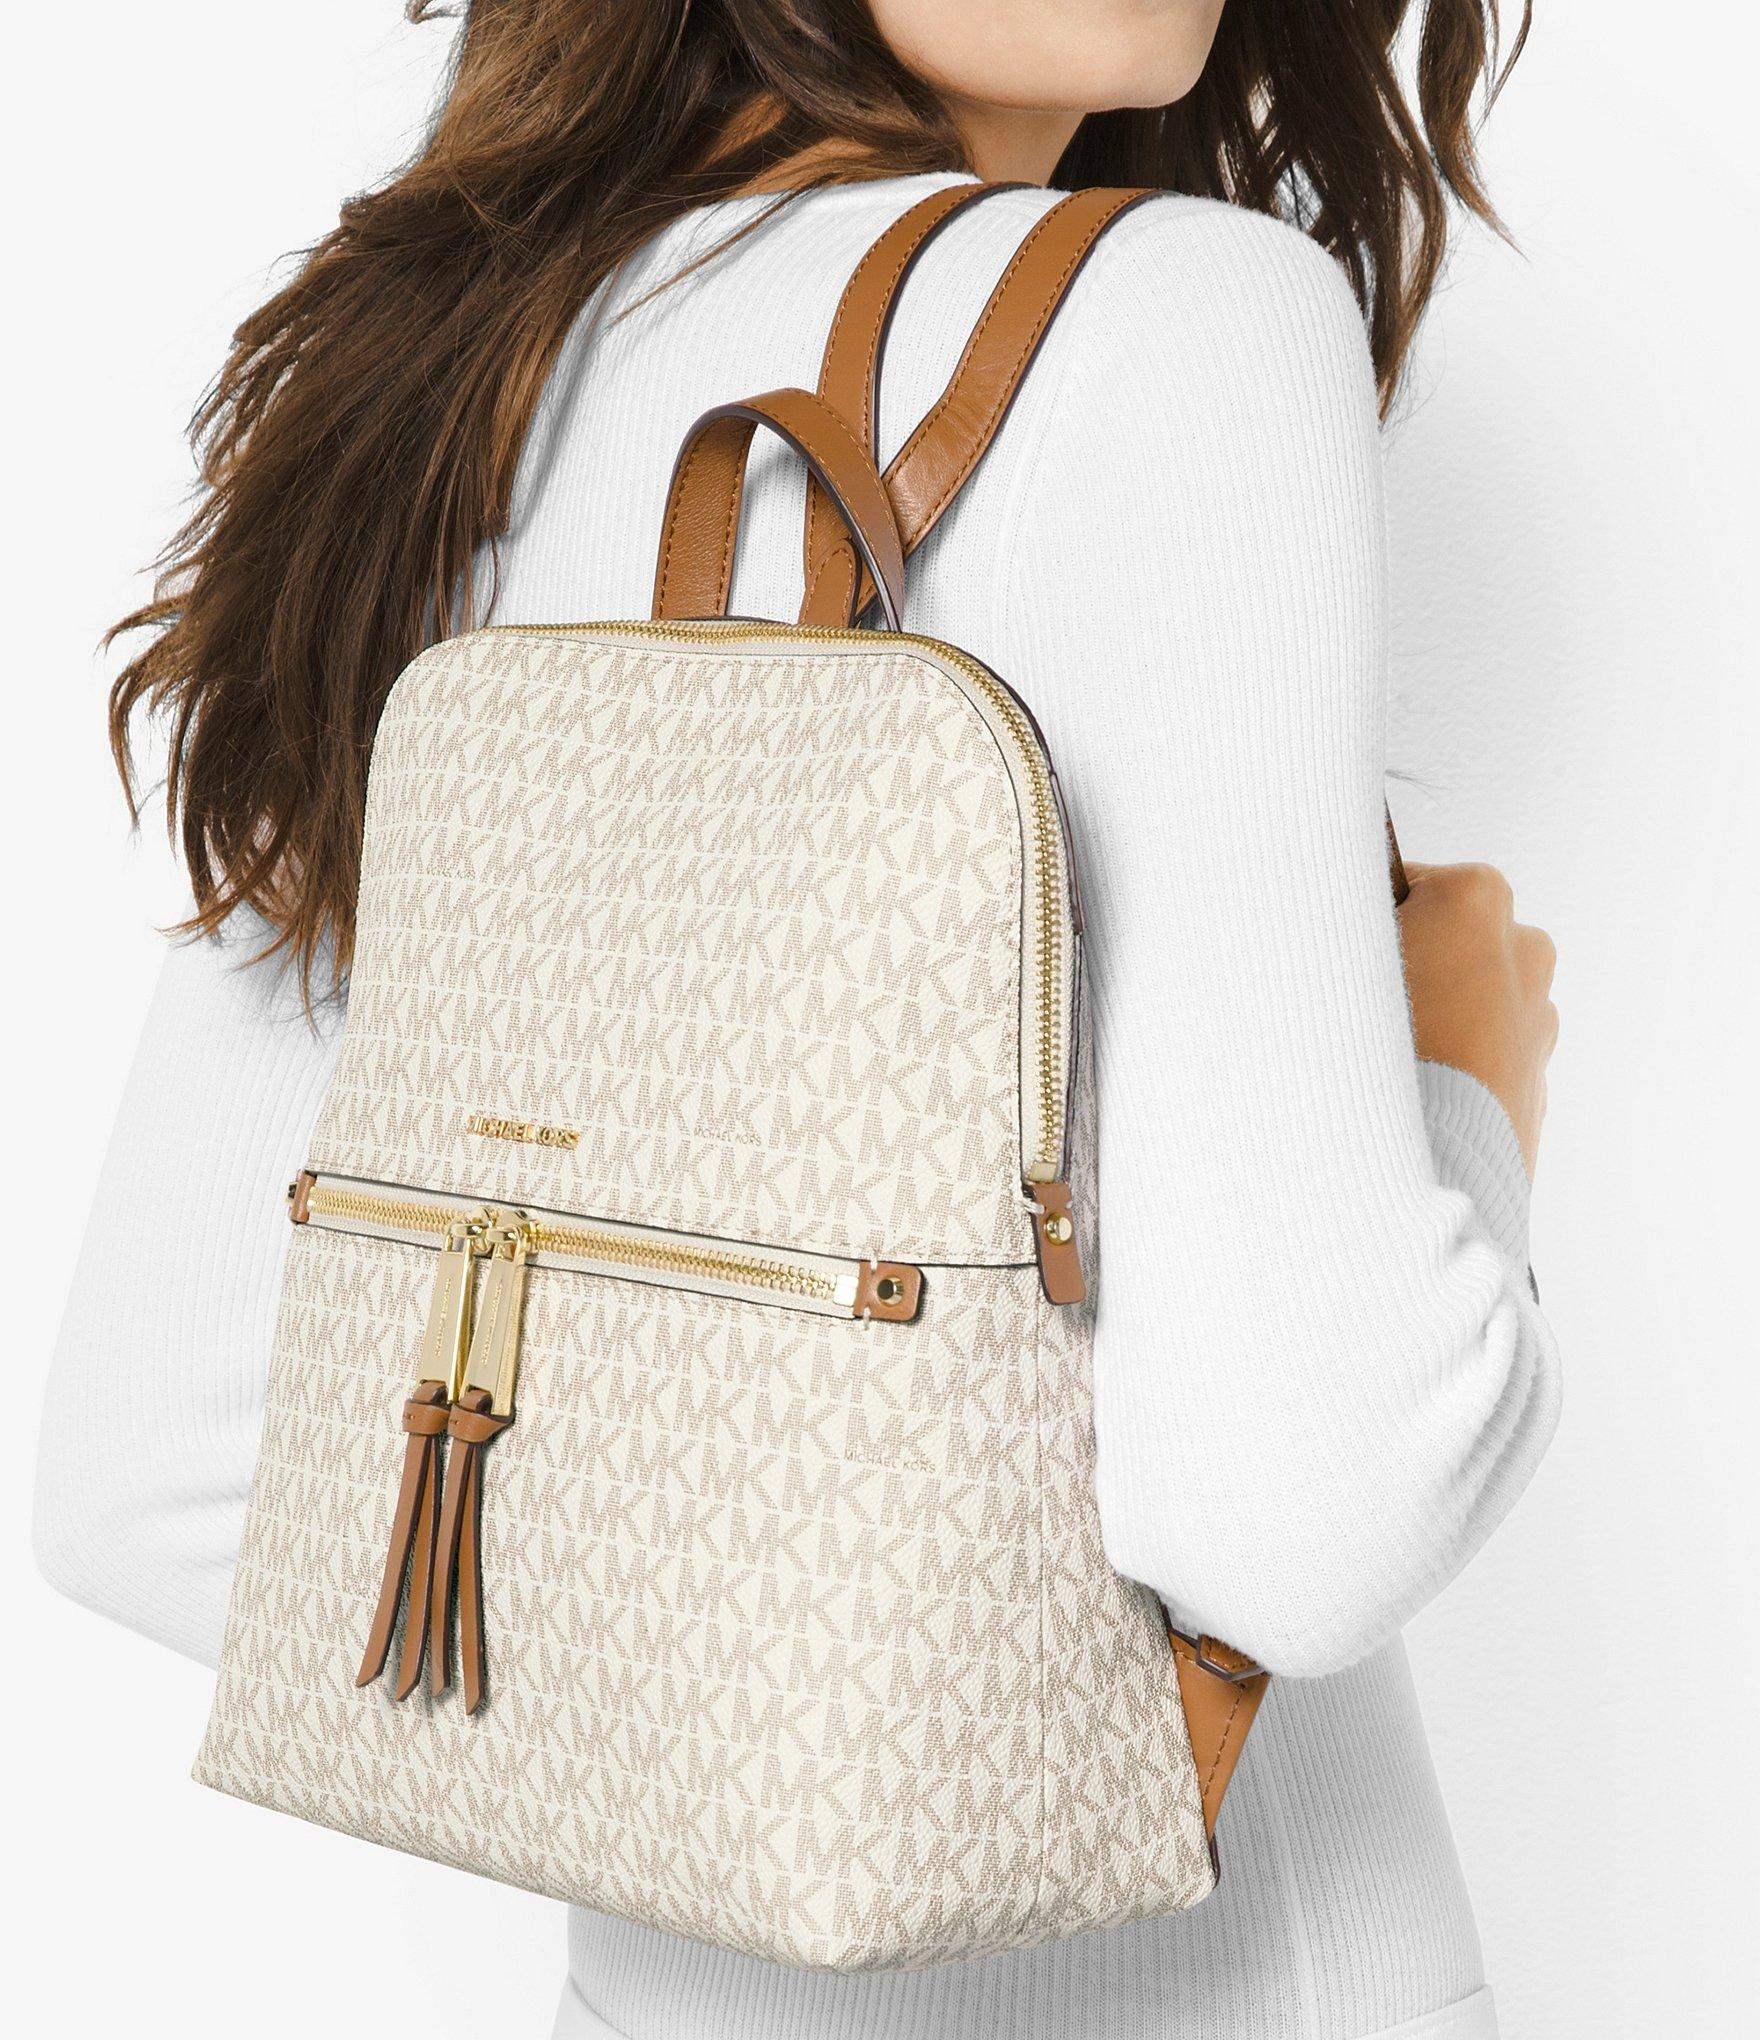 Lyst - MICHAEL Michael Kors Rhea Signature Zip Slim Backpack b728072b65ee1